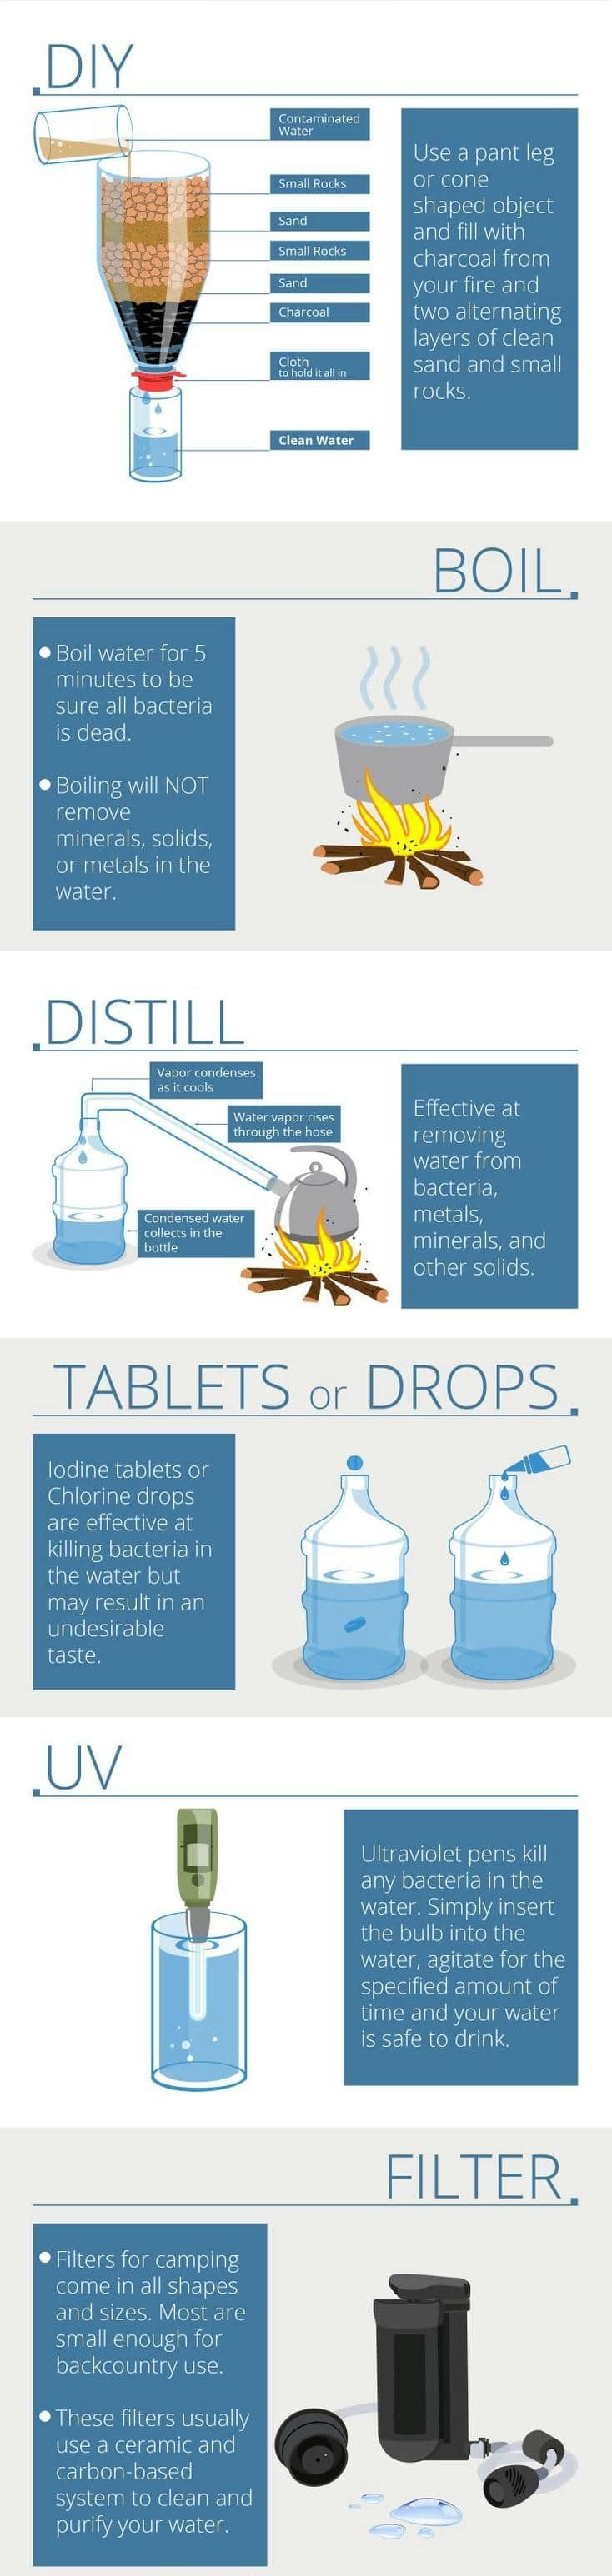 Purifying-water-infographic